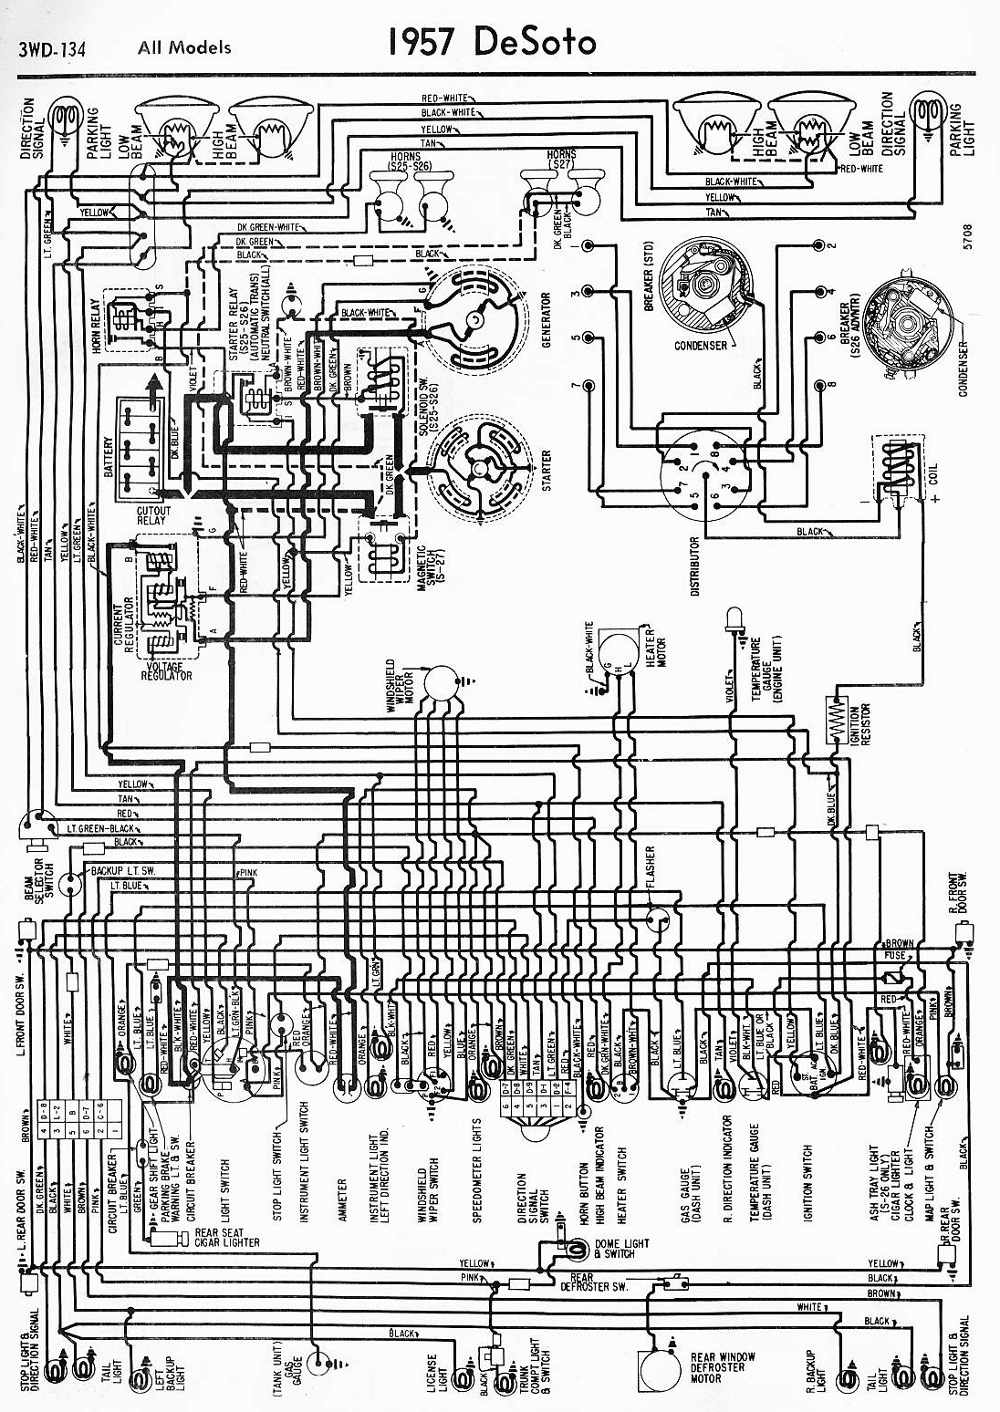 De Soto Car Manuals Wiring Diagrams Pdf Fault Codes 1958 Jeep Diagram Download